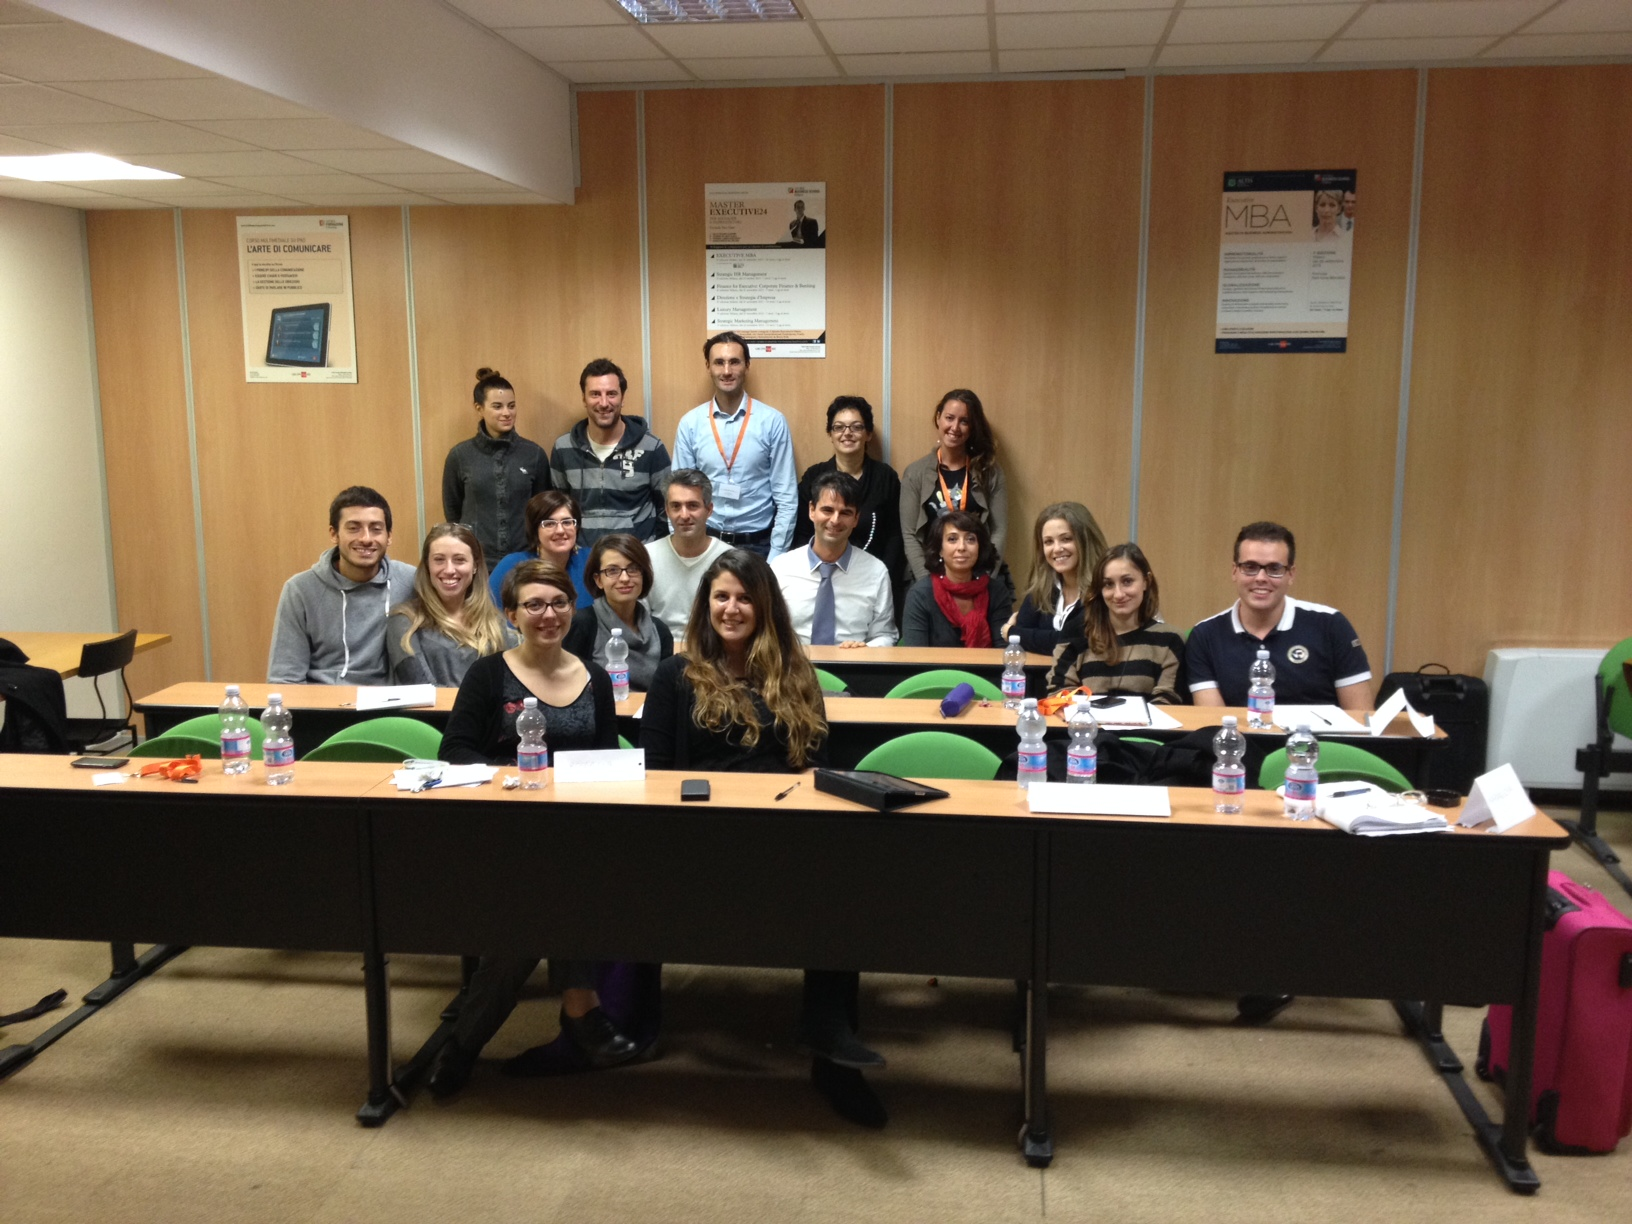 Master Sole 24 ore Marketing e Communication